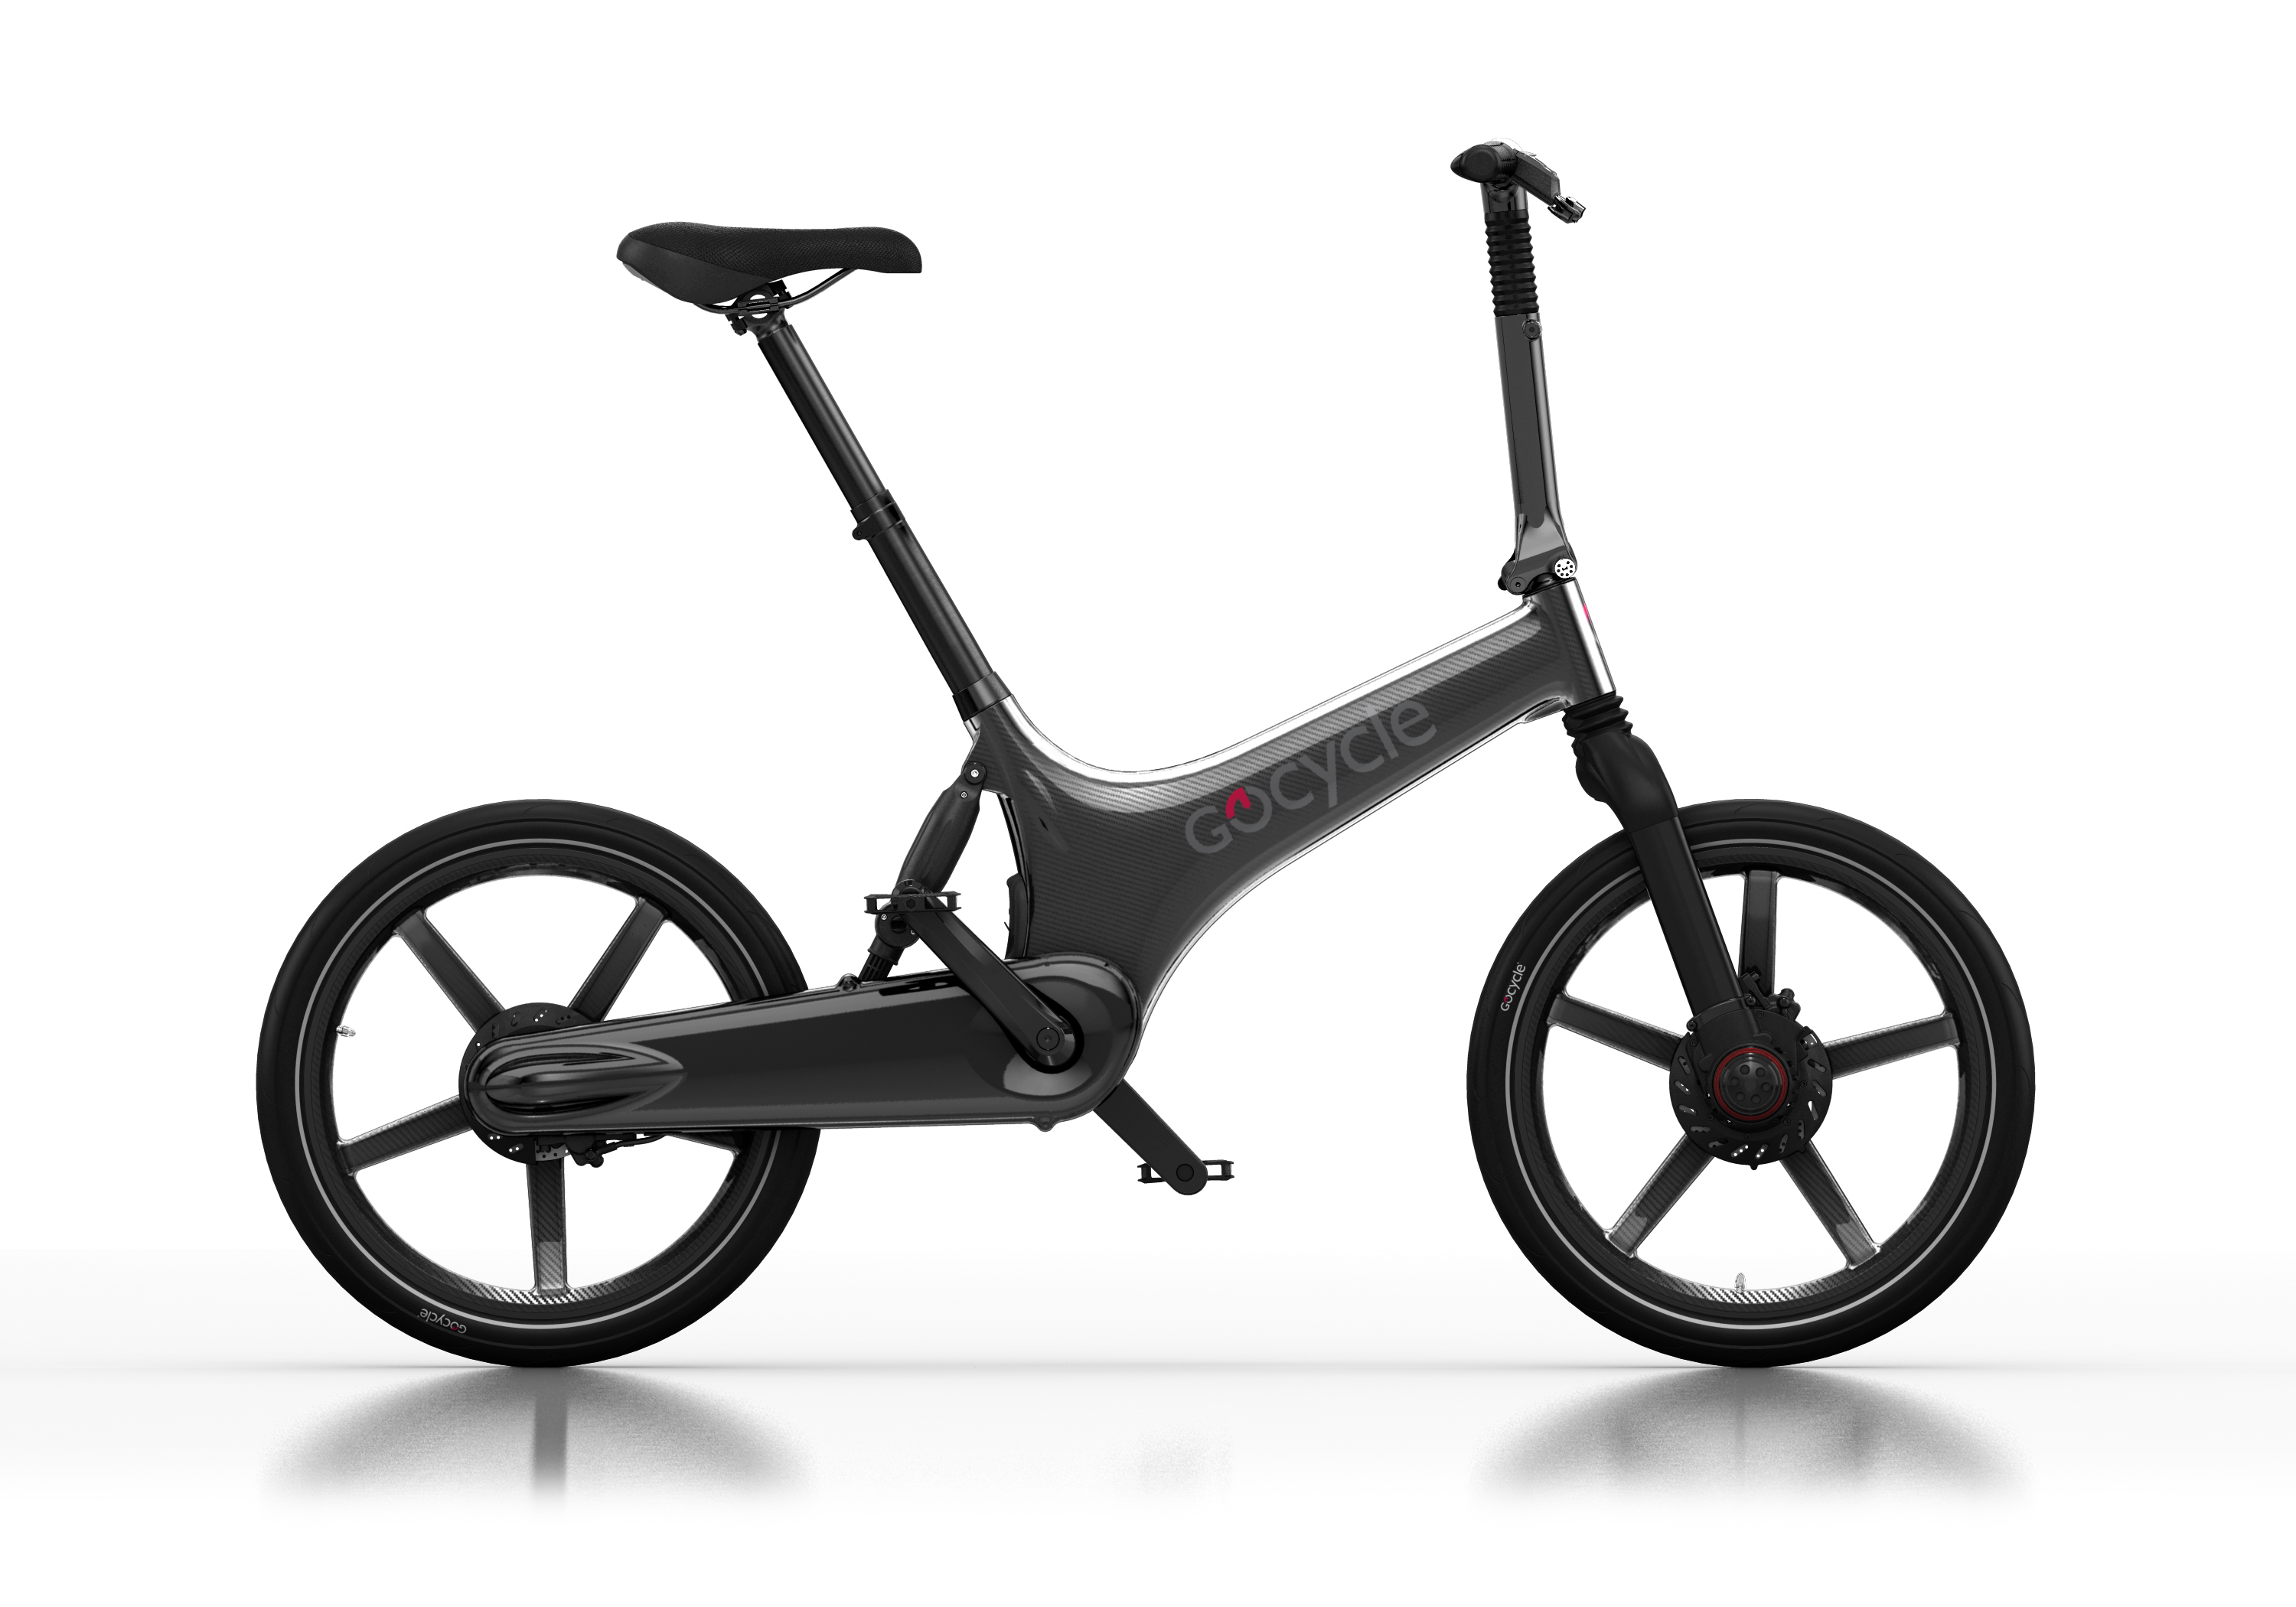 Gocycle G3C črn